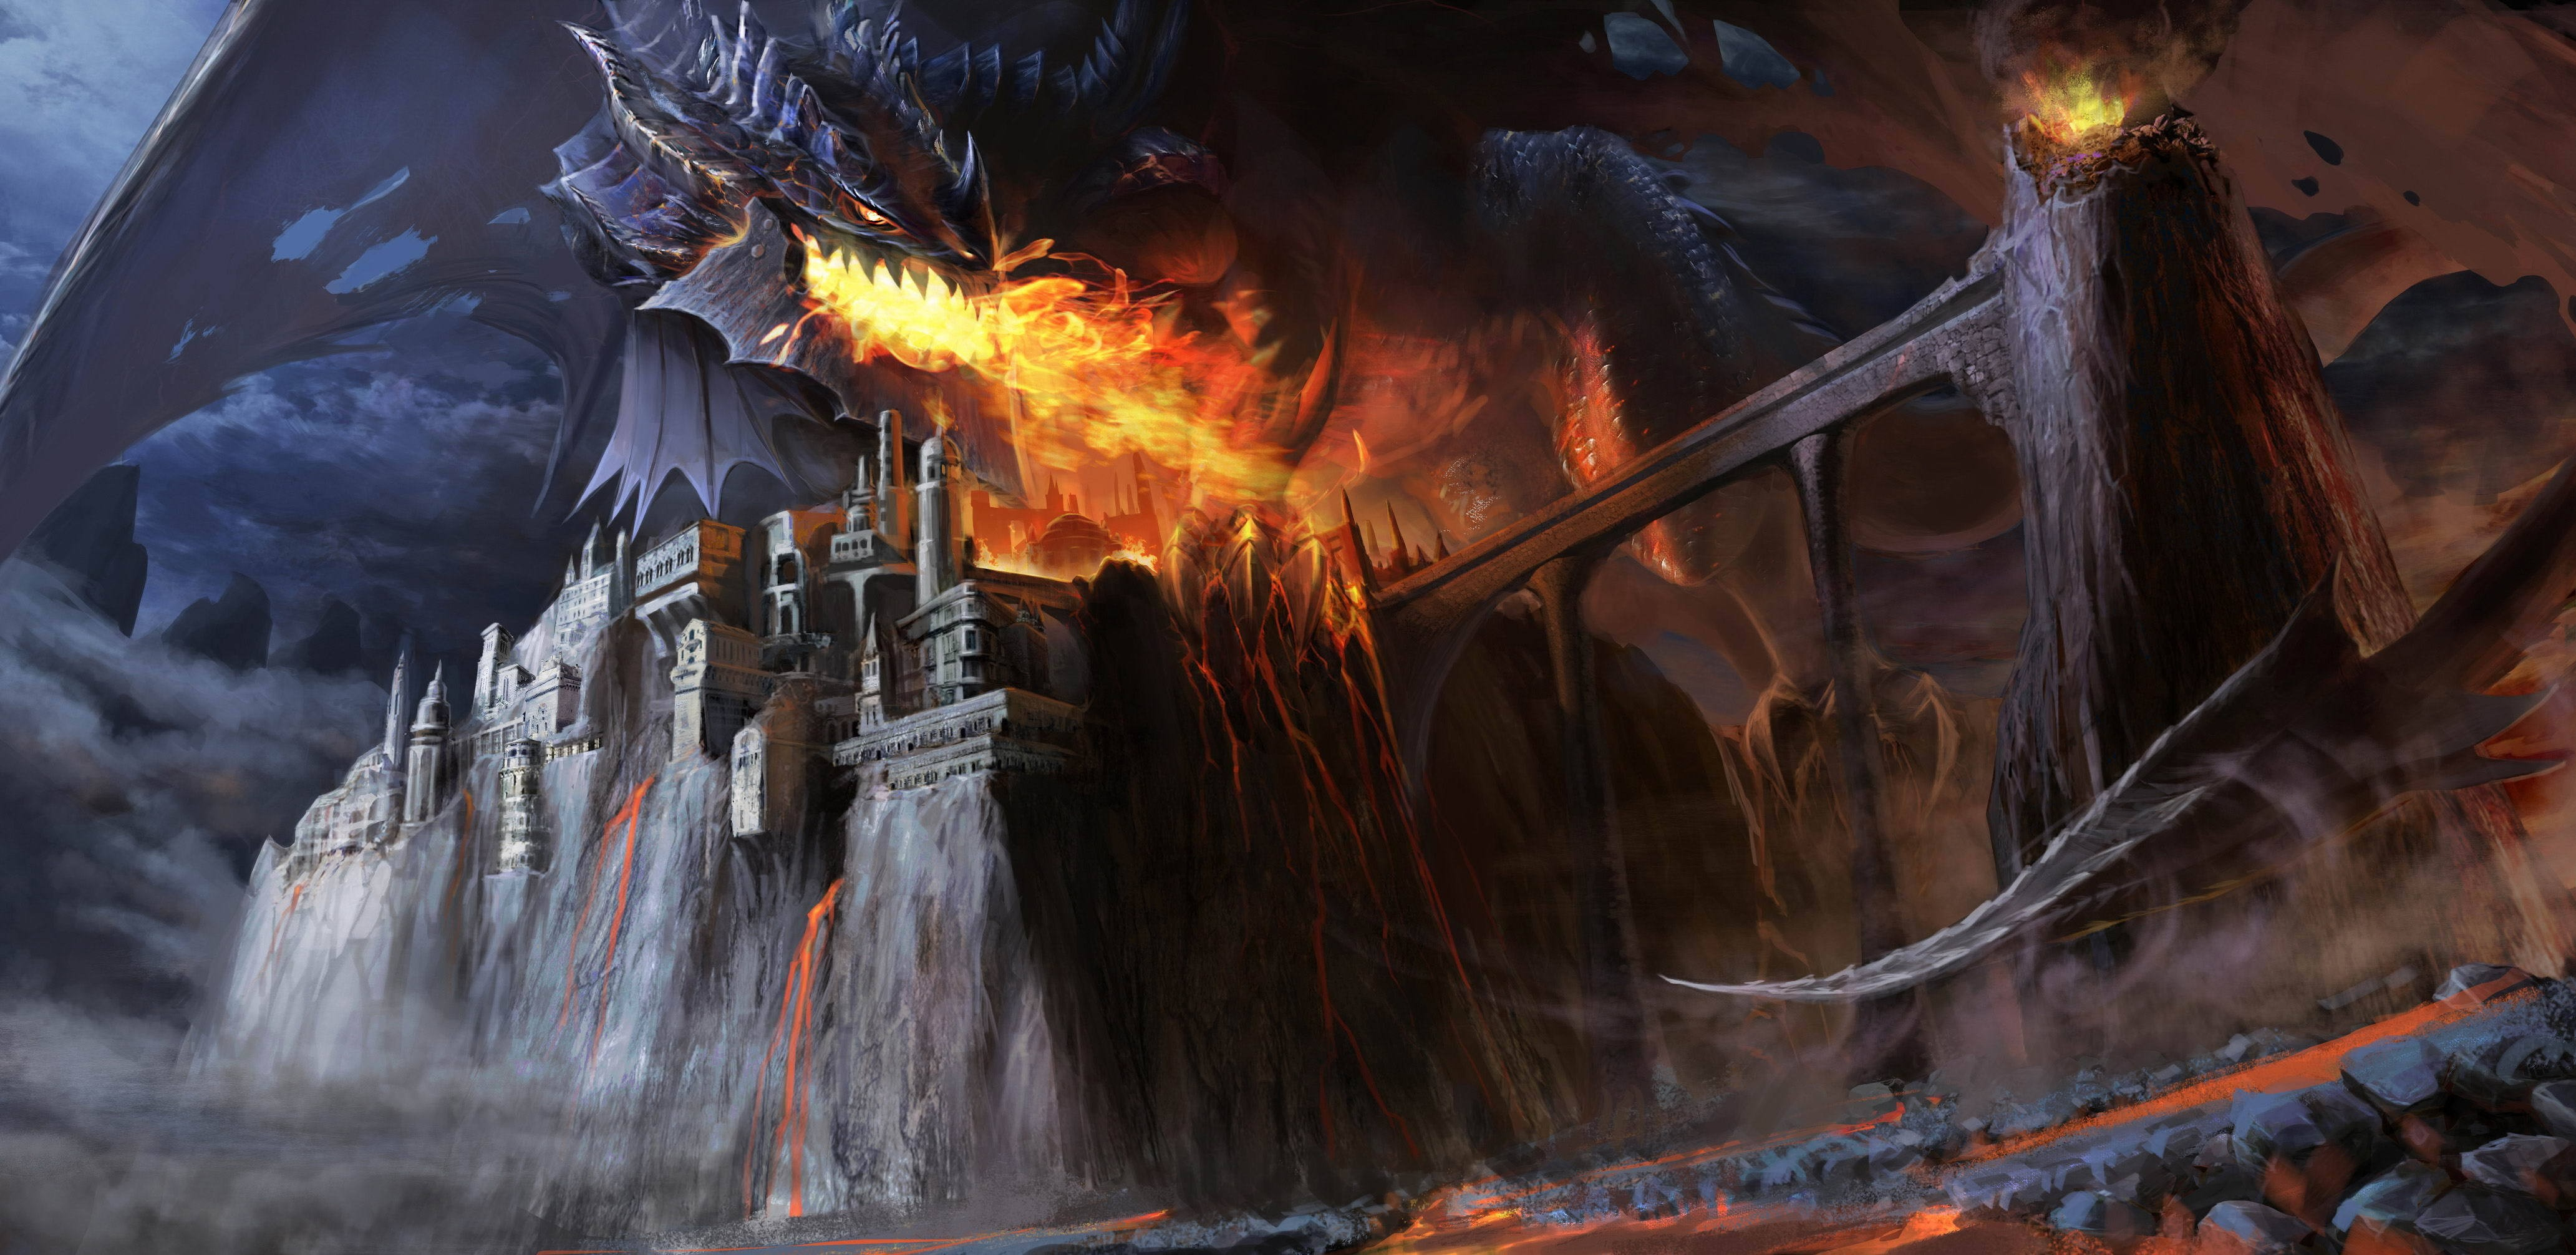 Wallpaper Dragon Black Fire Castle Bridge Lava Smoke